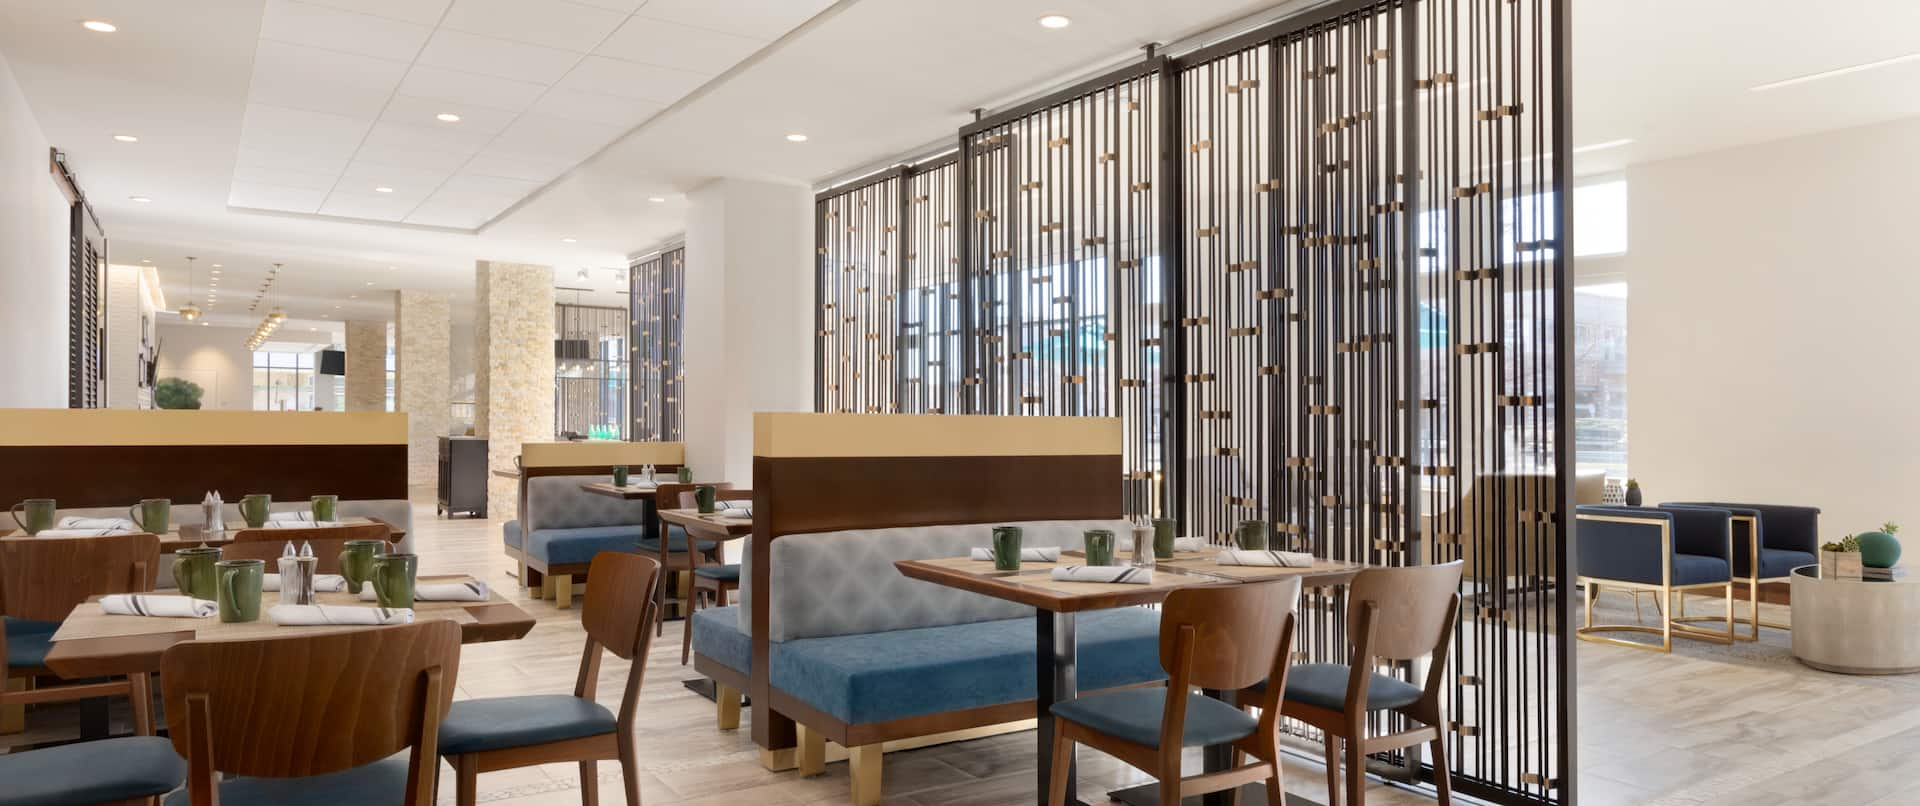 Breakfast Dining Area with Chairs and Tables